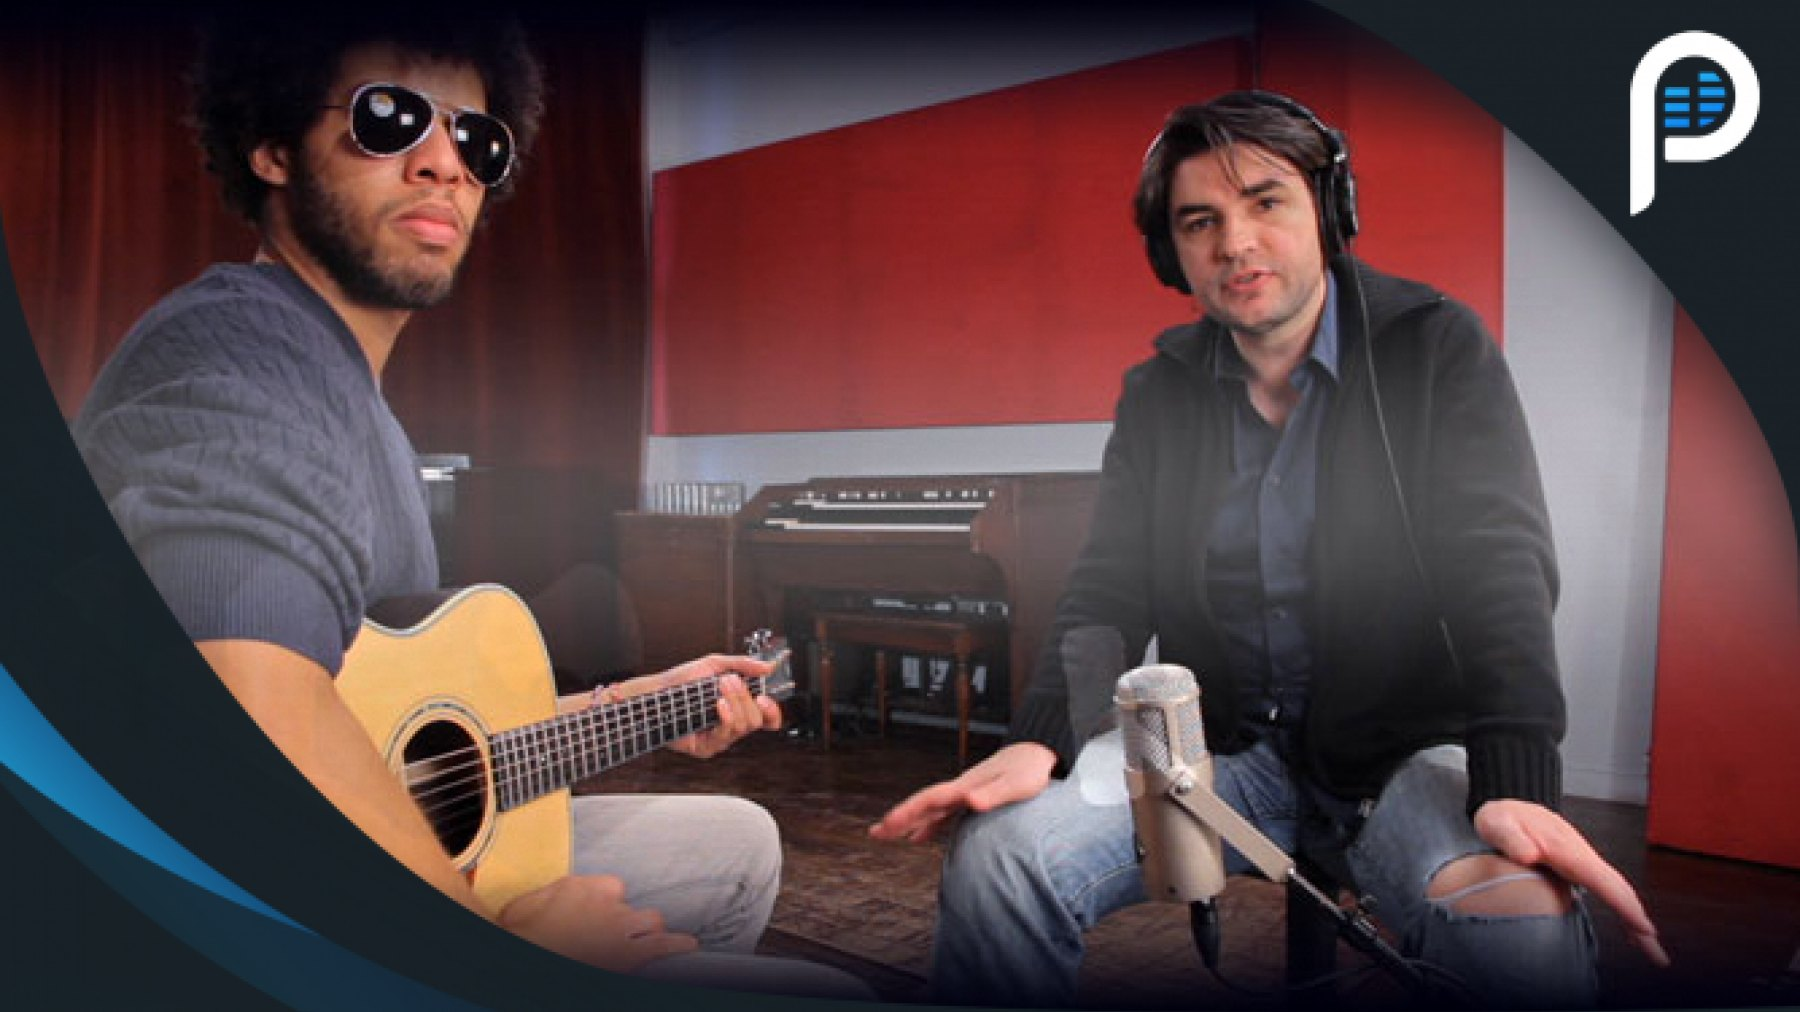 Recording Acoustic Guitar: How To Place an Acoustic Guitar Microphone